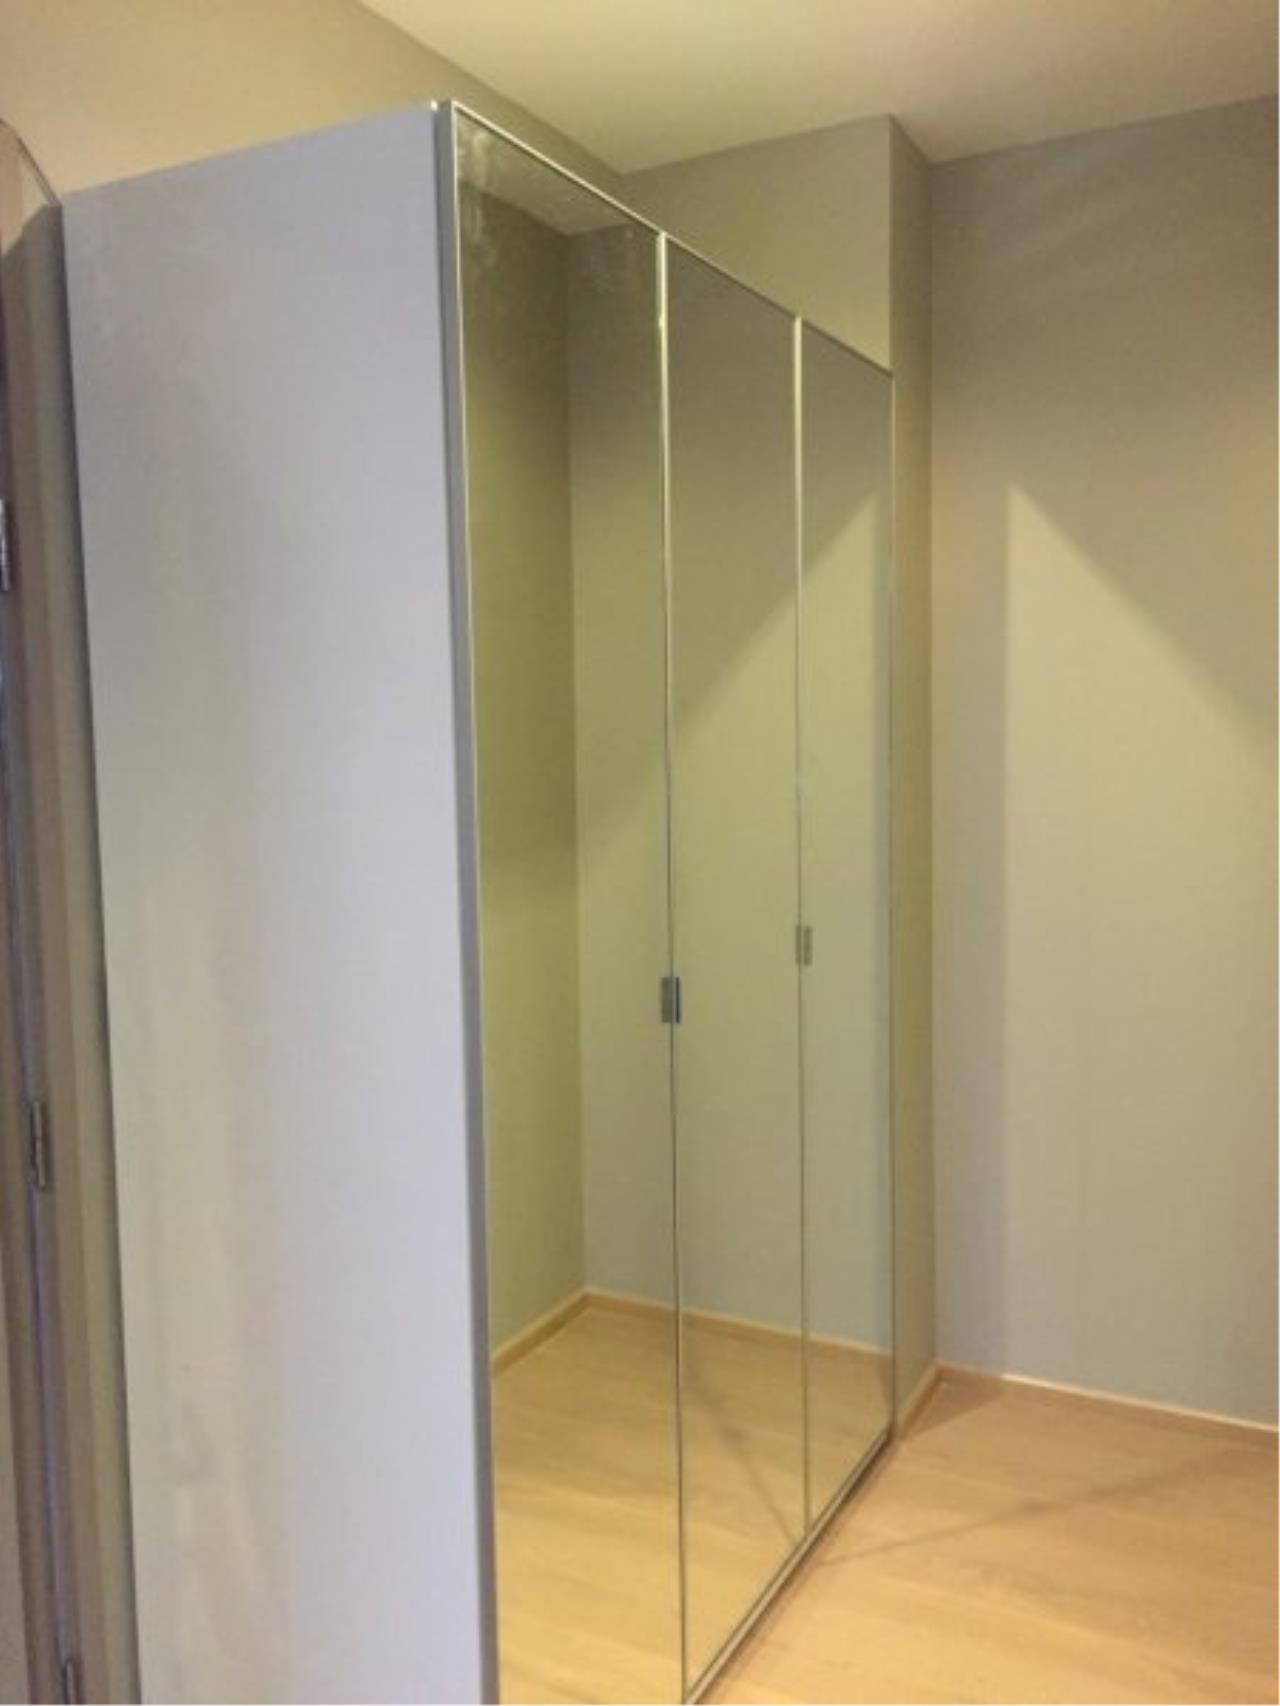 Piri Property Agency's Compact 1 Bedroom in the HQ Condo for rent on high floor 5